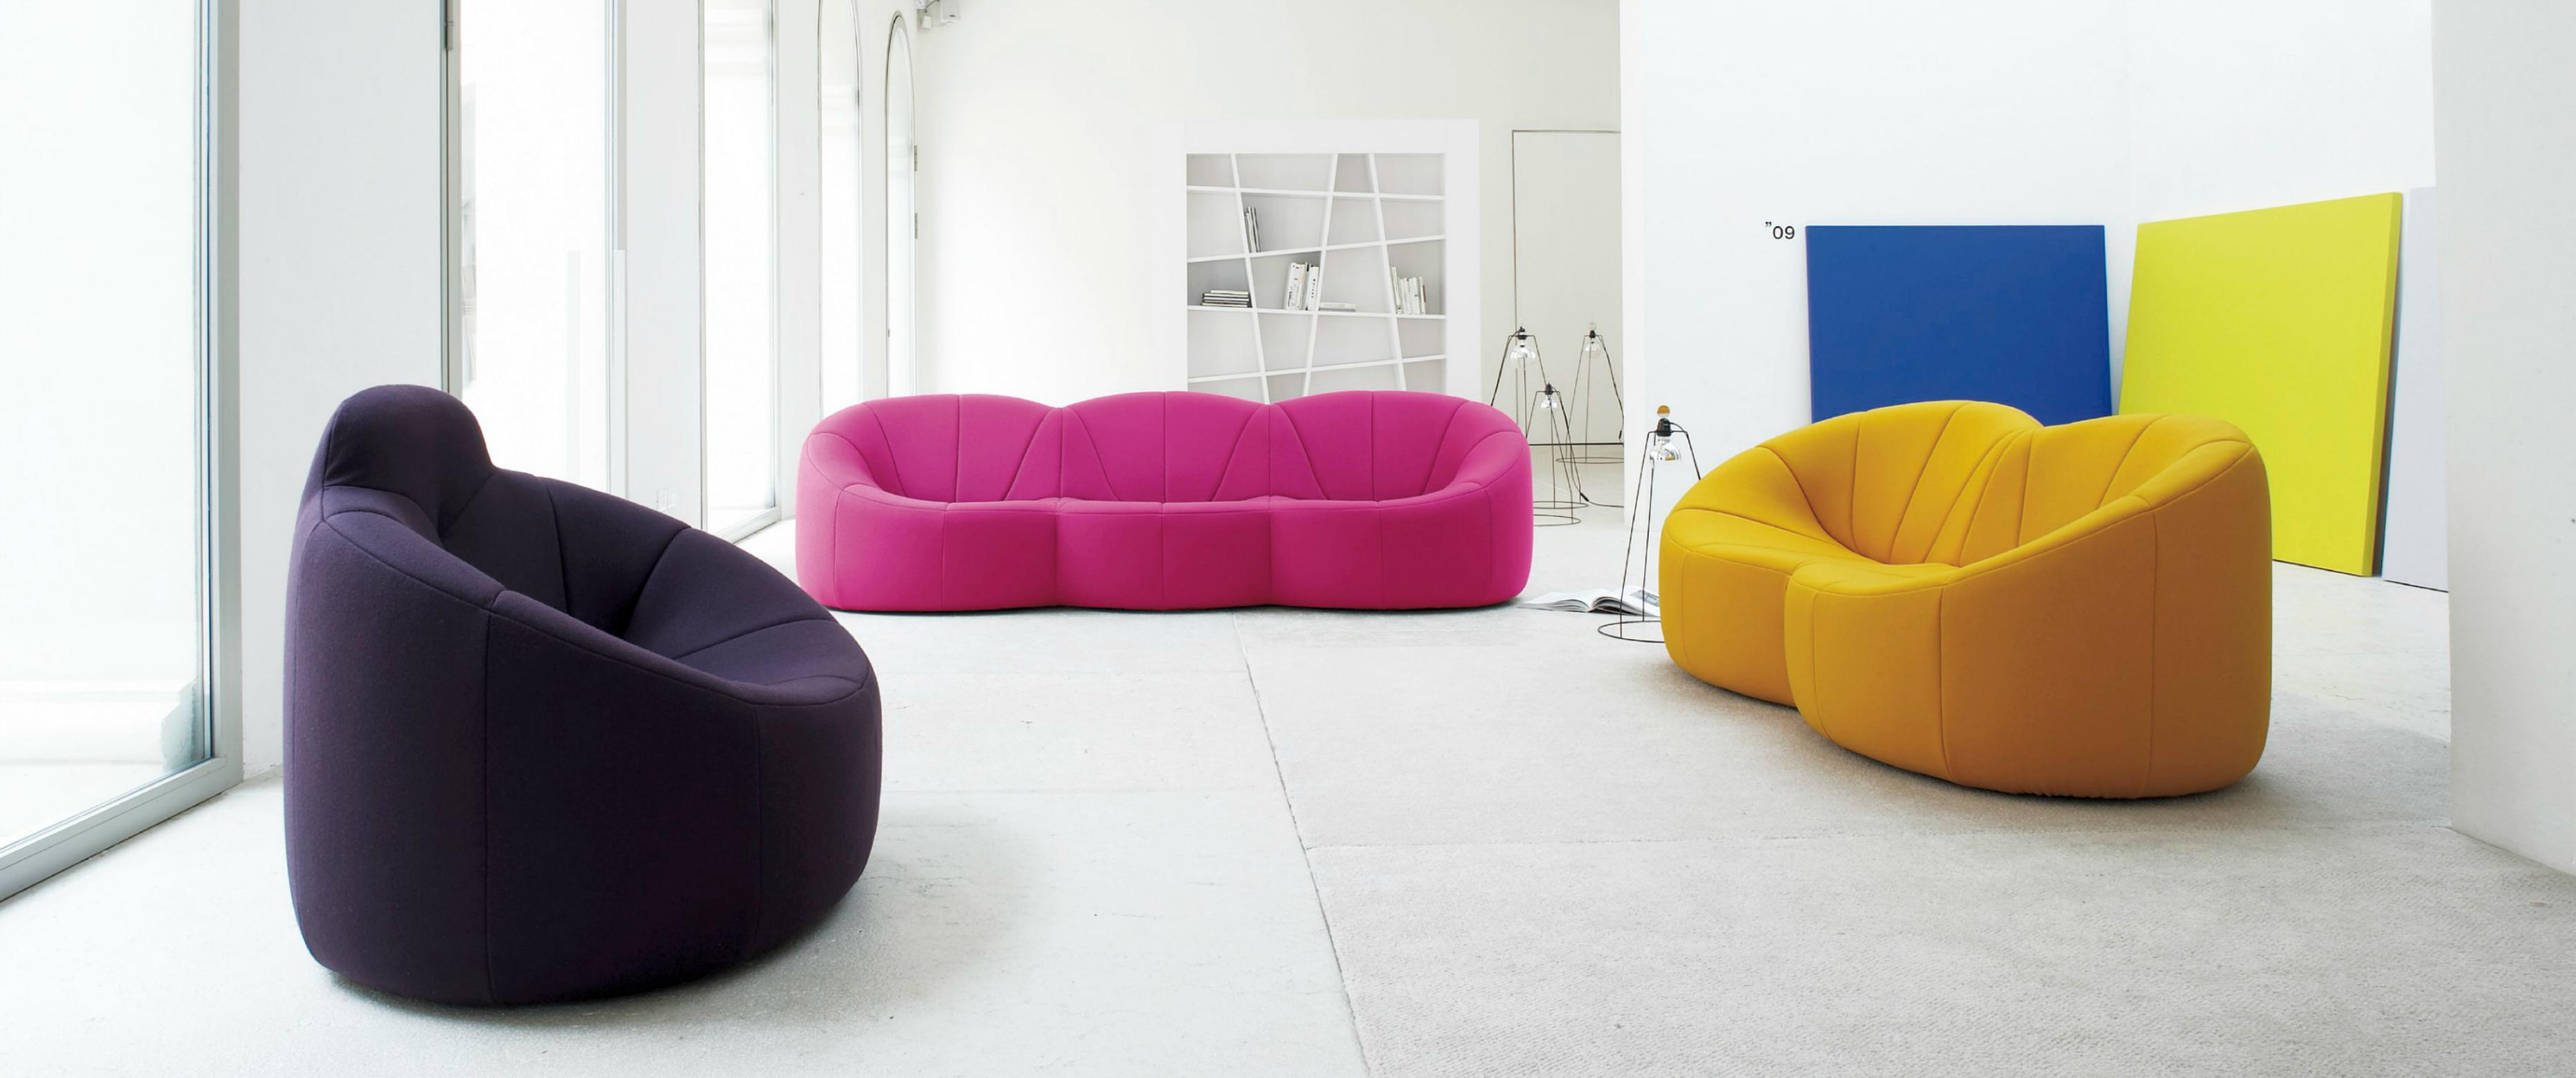 Ligne roset official site contemporary high end furniture for Ligne roset ulm